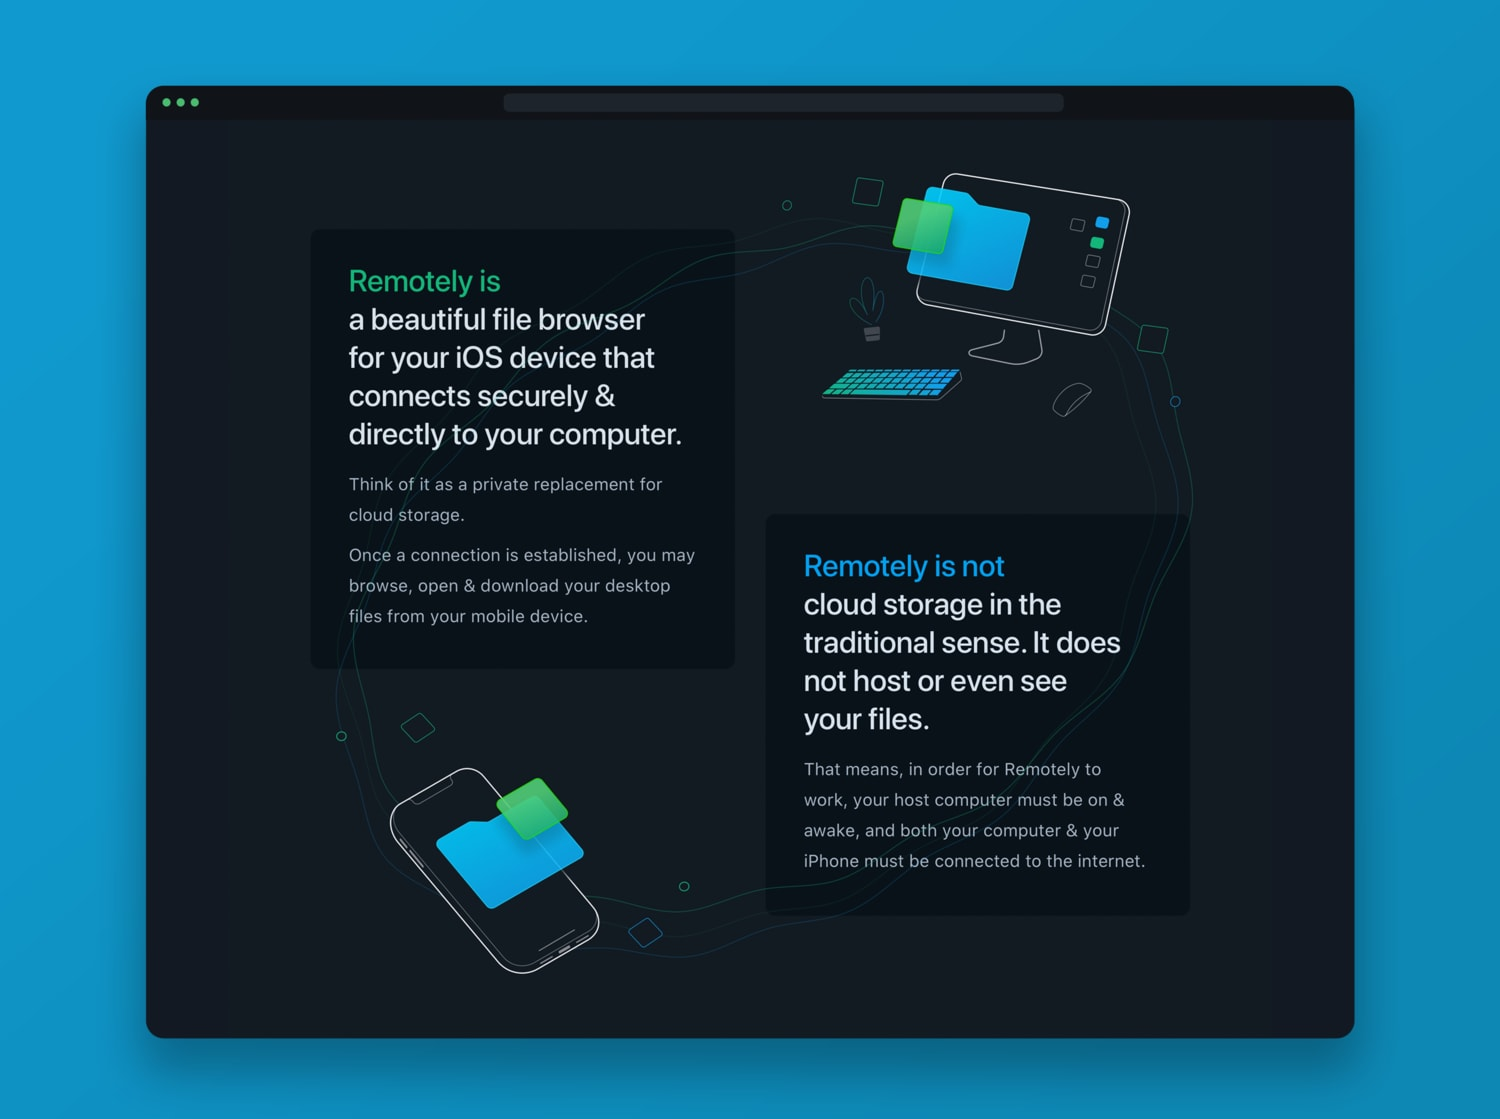 Remotely Website Design and Illustrations